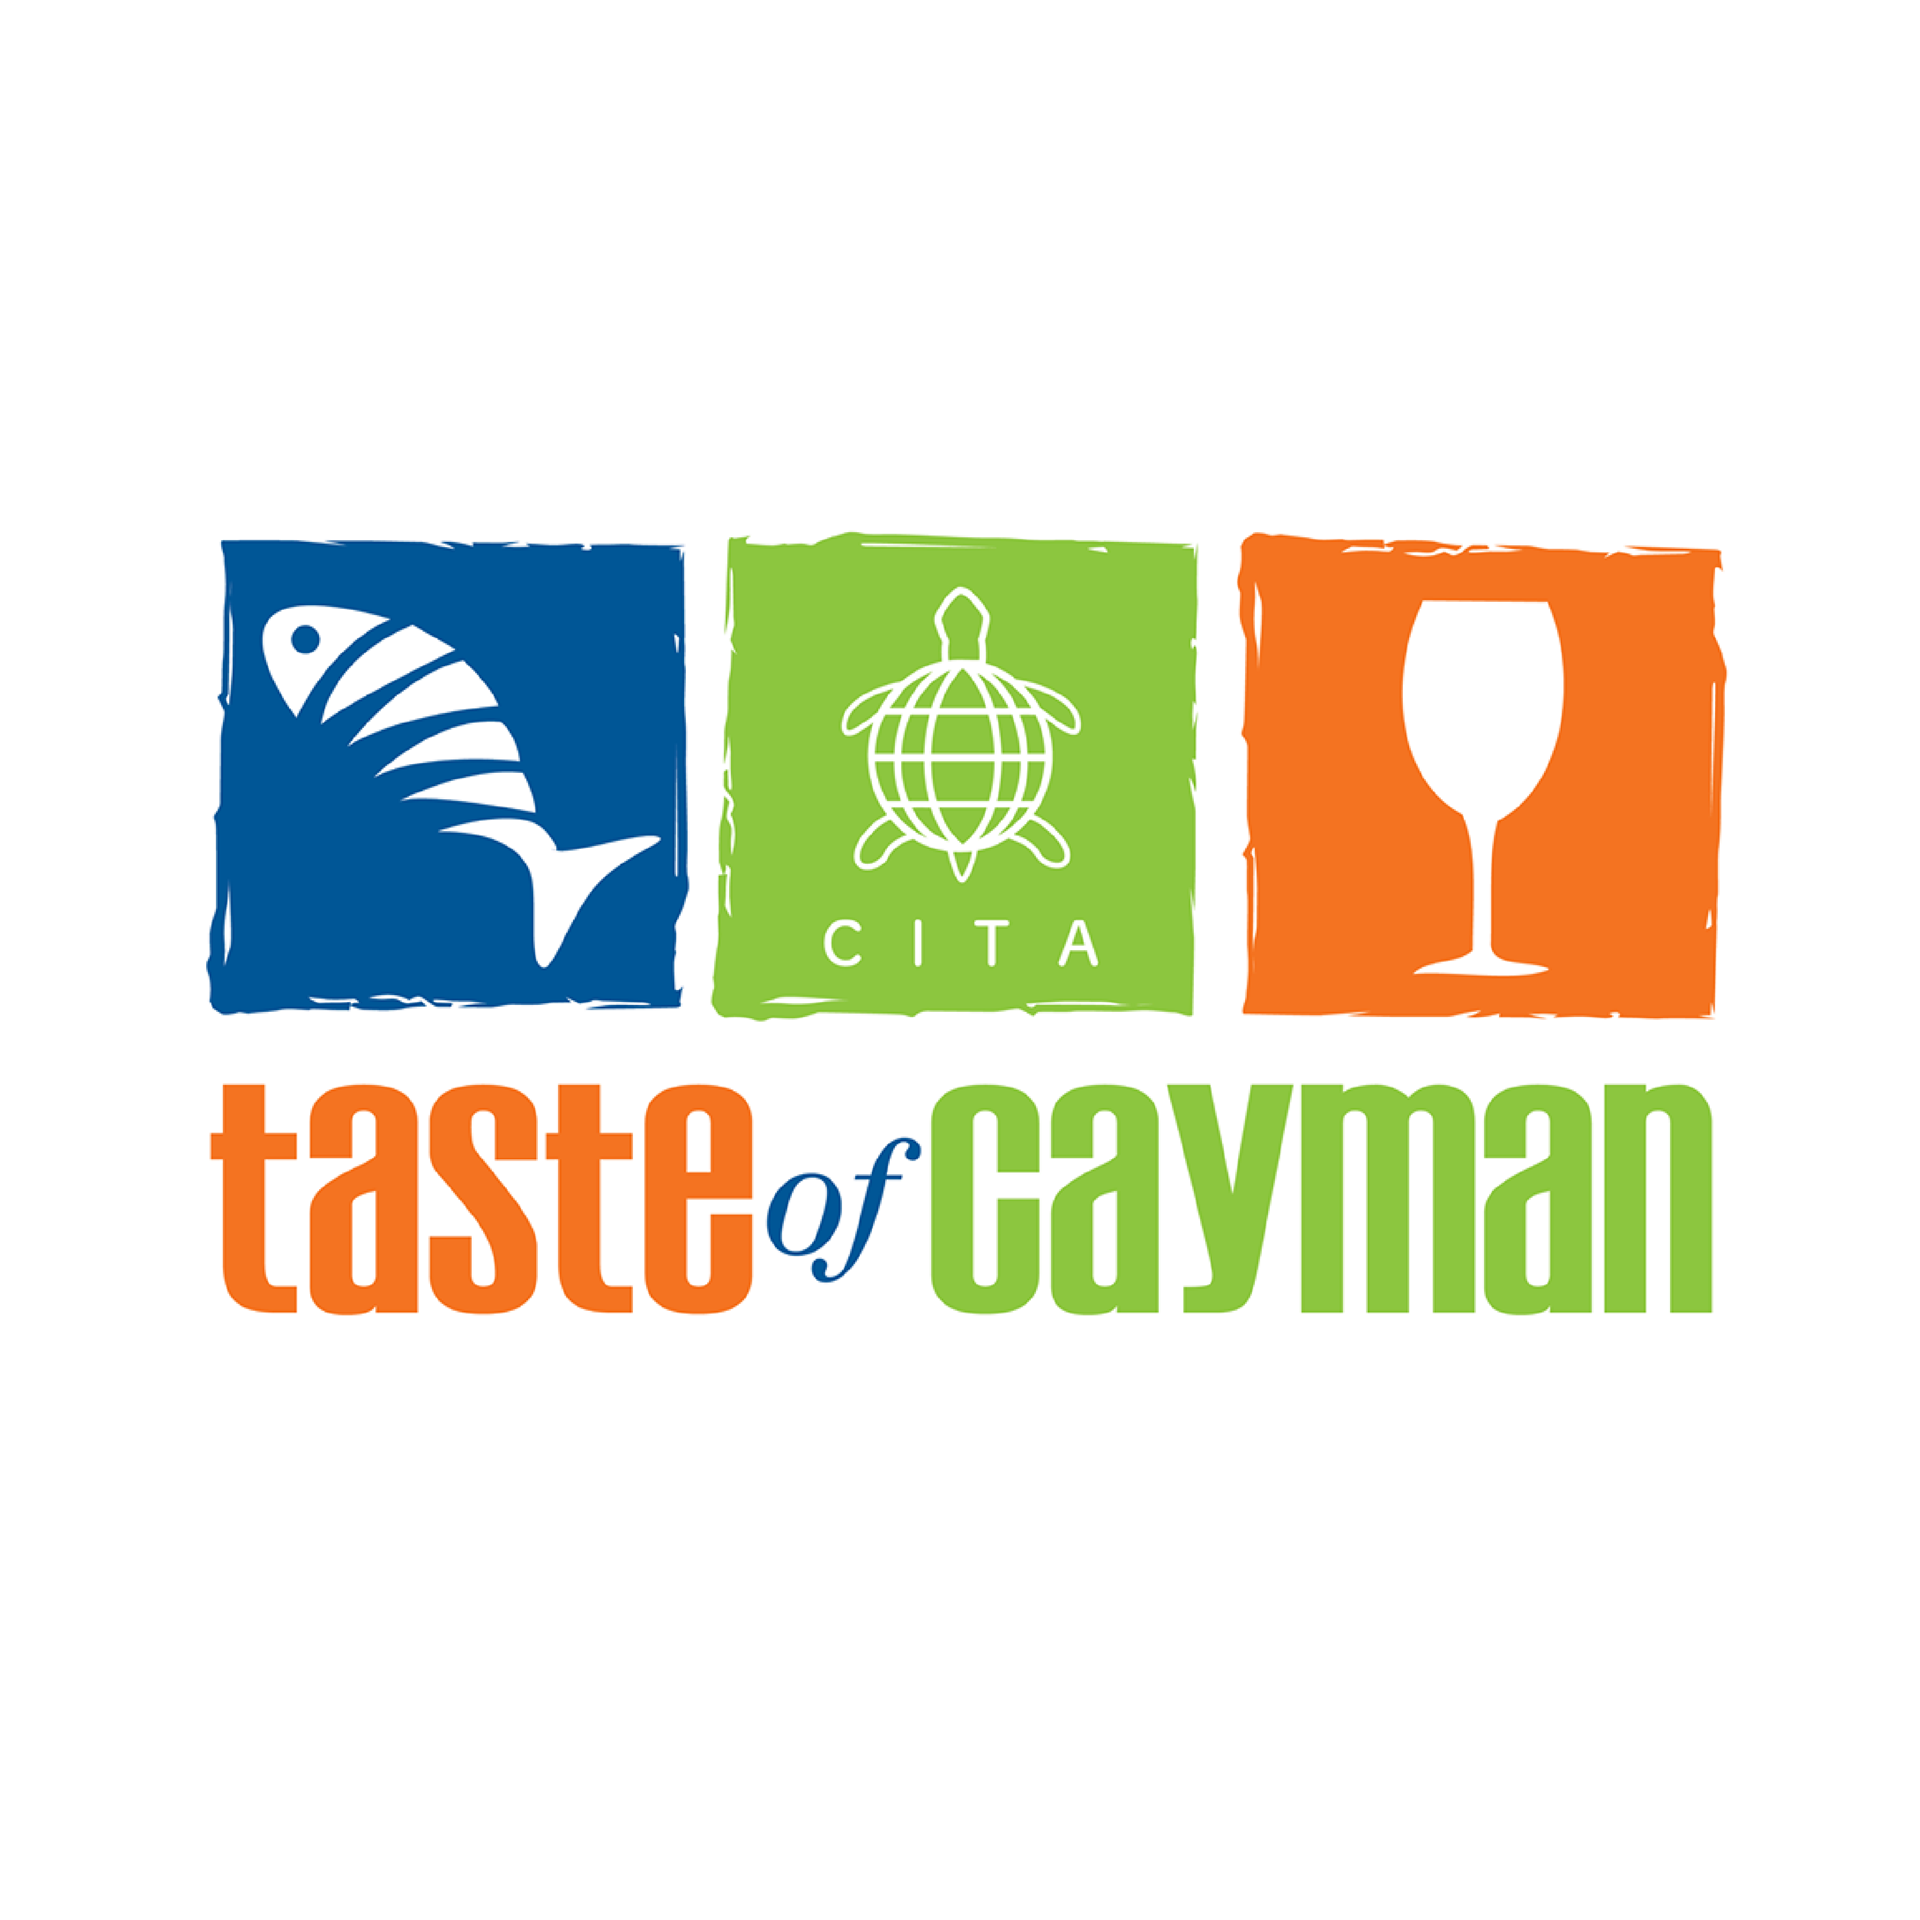 Taste of Cayman